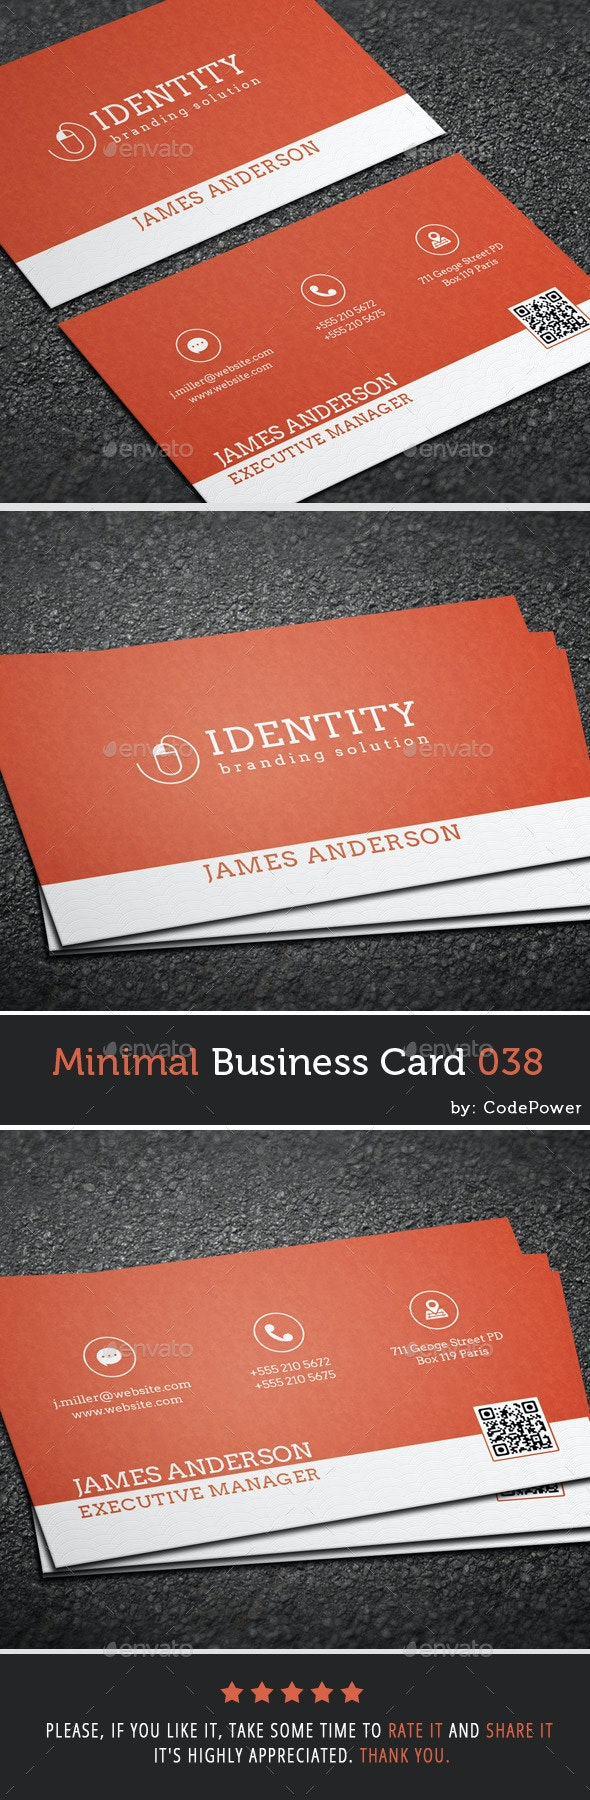 Minimal Business Card 038 - Corporate Business Cards